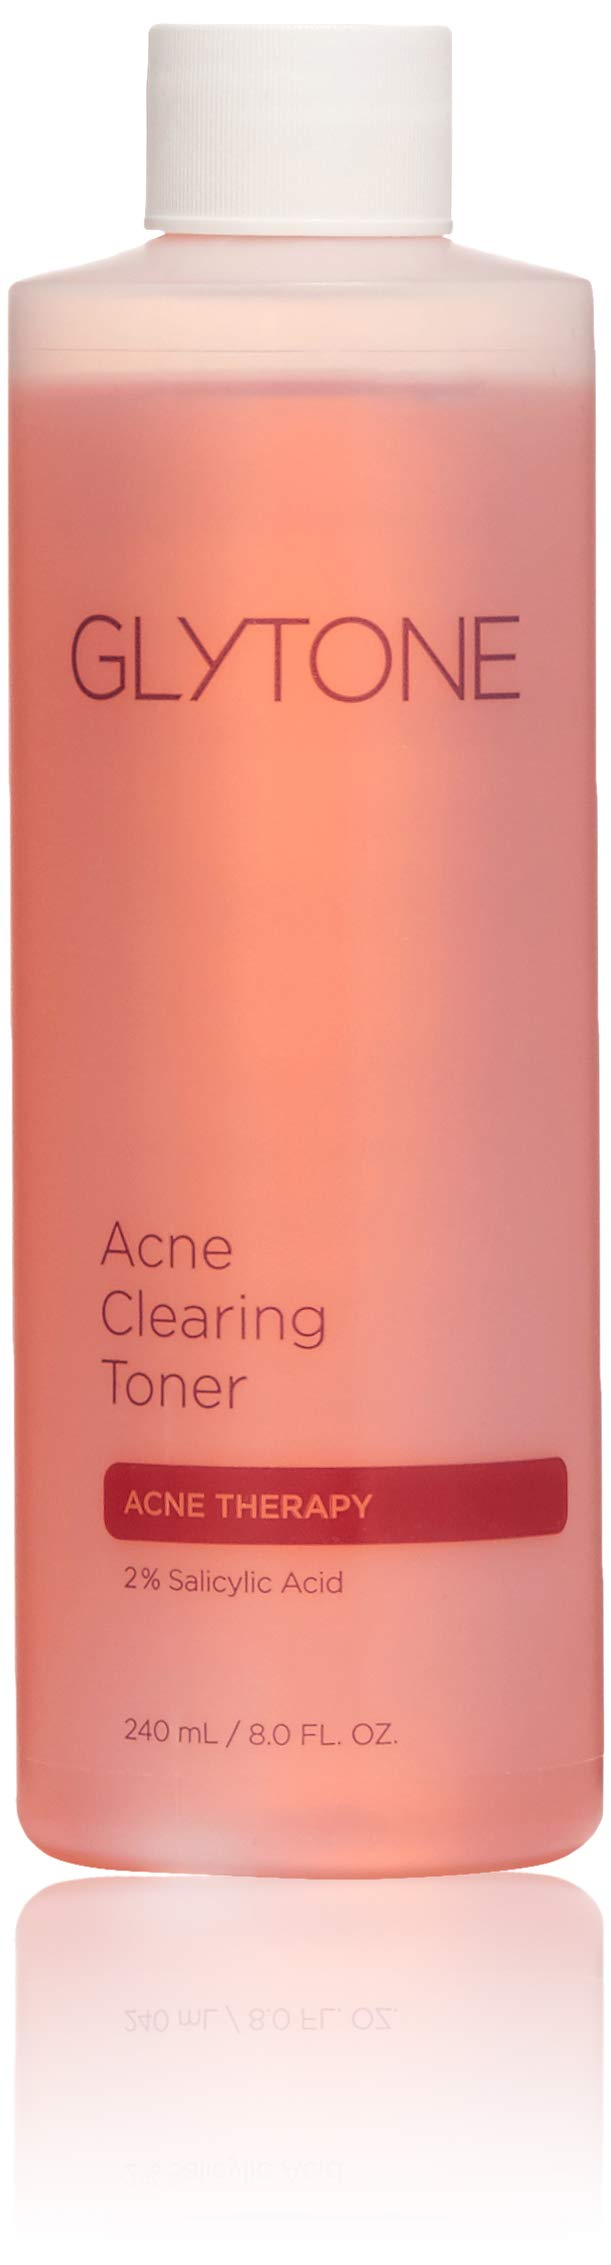 Glytone Acne Clearing Toner with 2% Salicylic Acid, Mattifying for Blemish Prone Skin, Oil-Free, Non-Comedogenic, 8 oz.